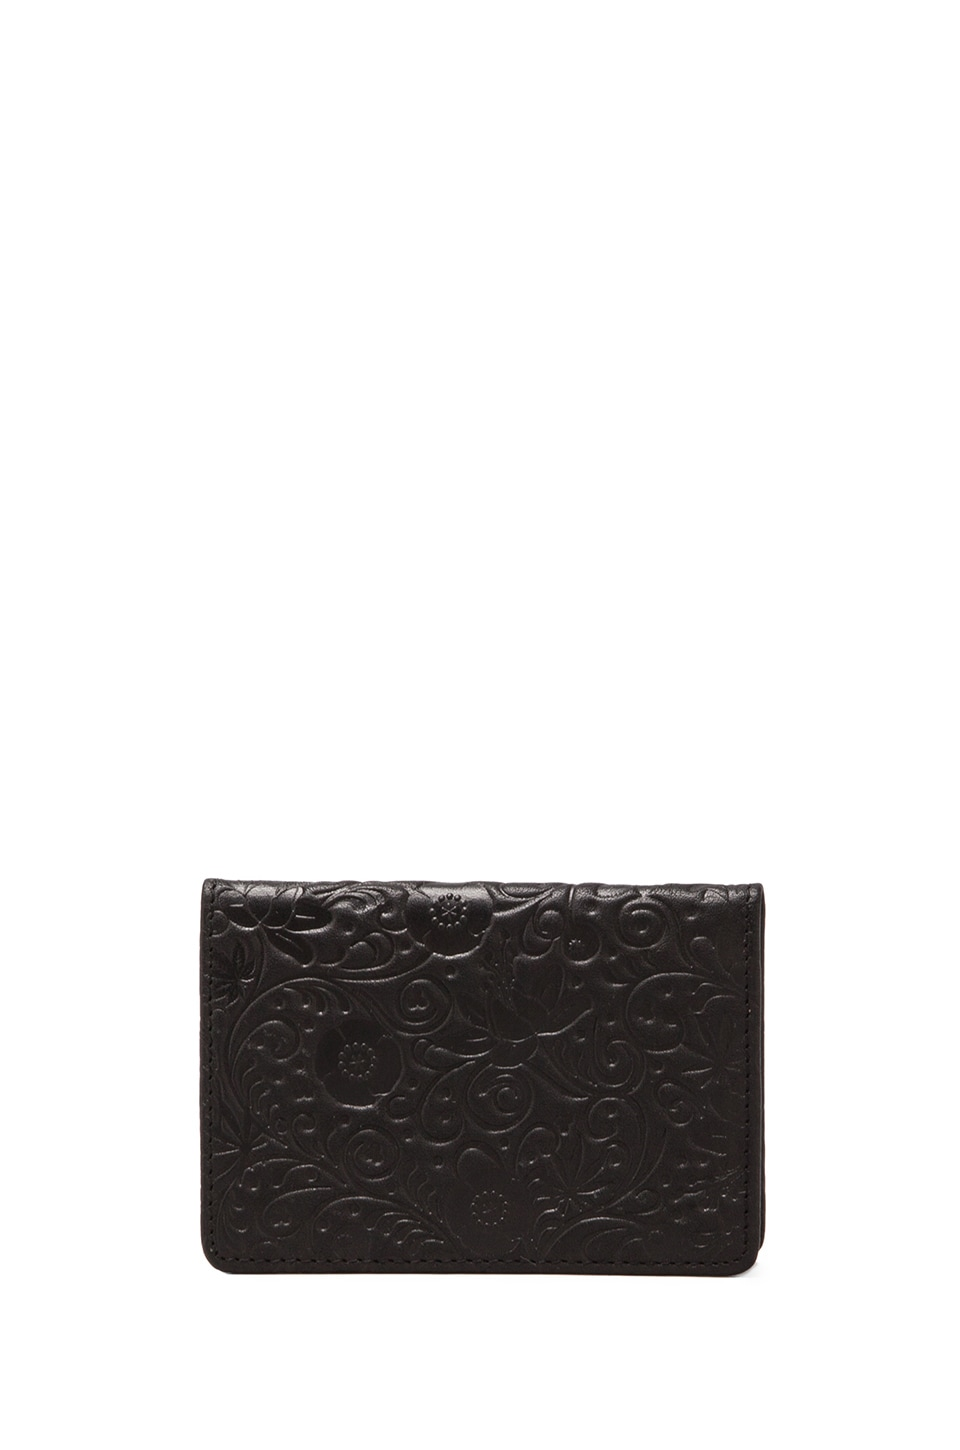 SSUR Khokhloma Card Holder in Matte Black